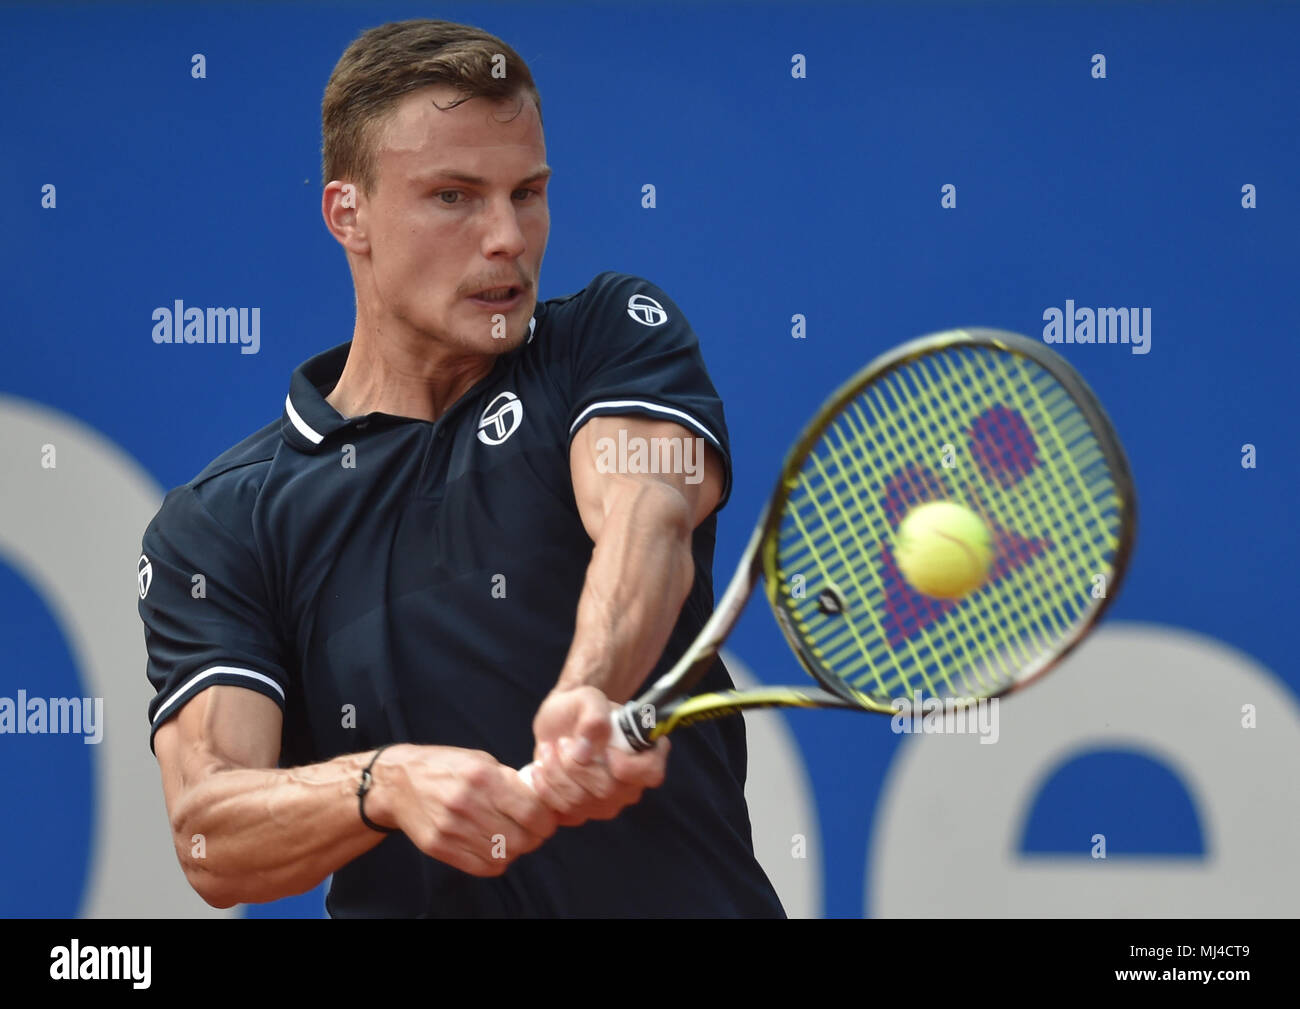 Atp - singles munich (germany) clay - CMA